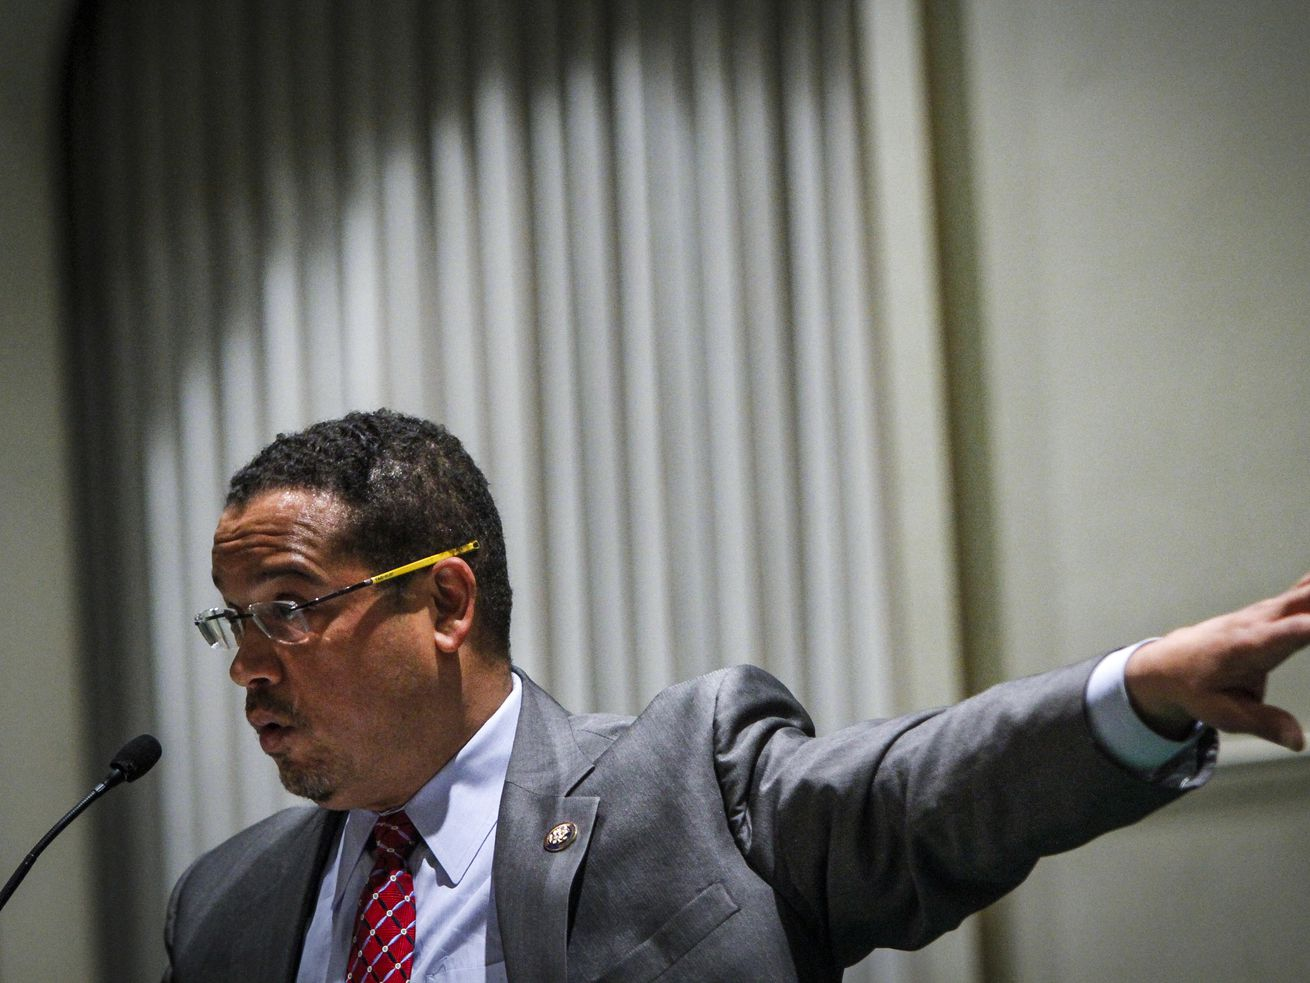 US Rep. Keith Ellison, who is running for Minnesota attorney general, faces new domestic abuse allegations.